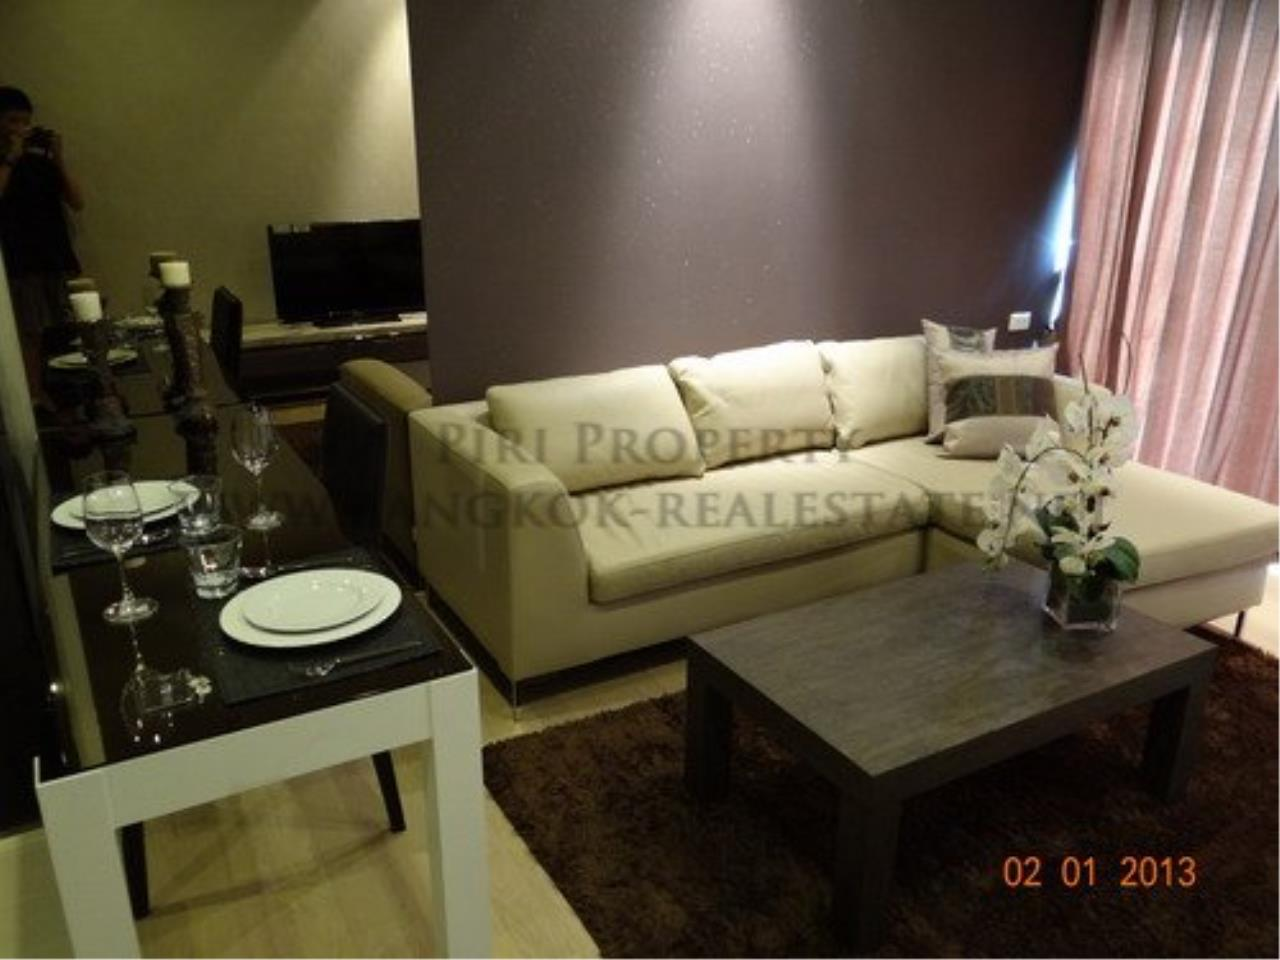 Piri Property Agency's 1 Bed - Noble Refine - Fully furnished for Rent near the Emporium 1